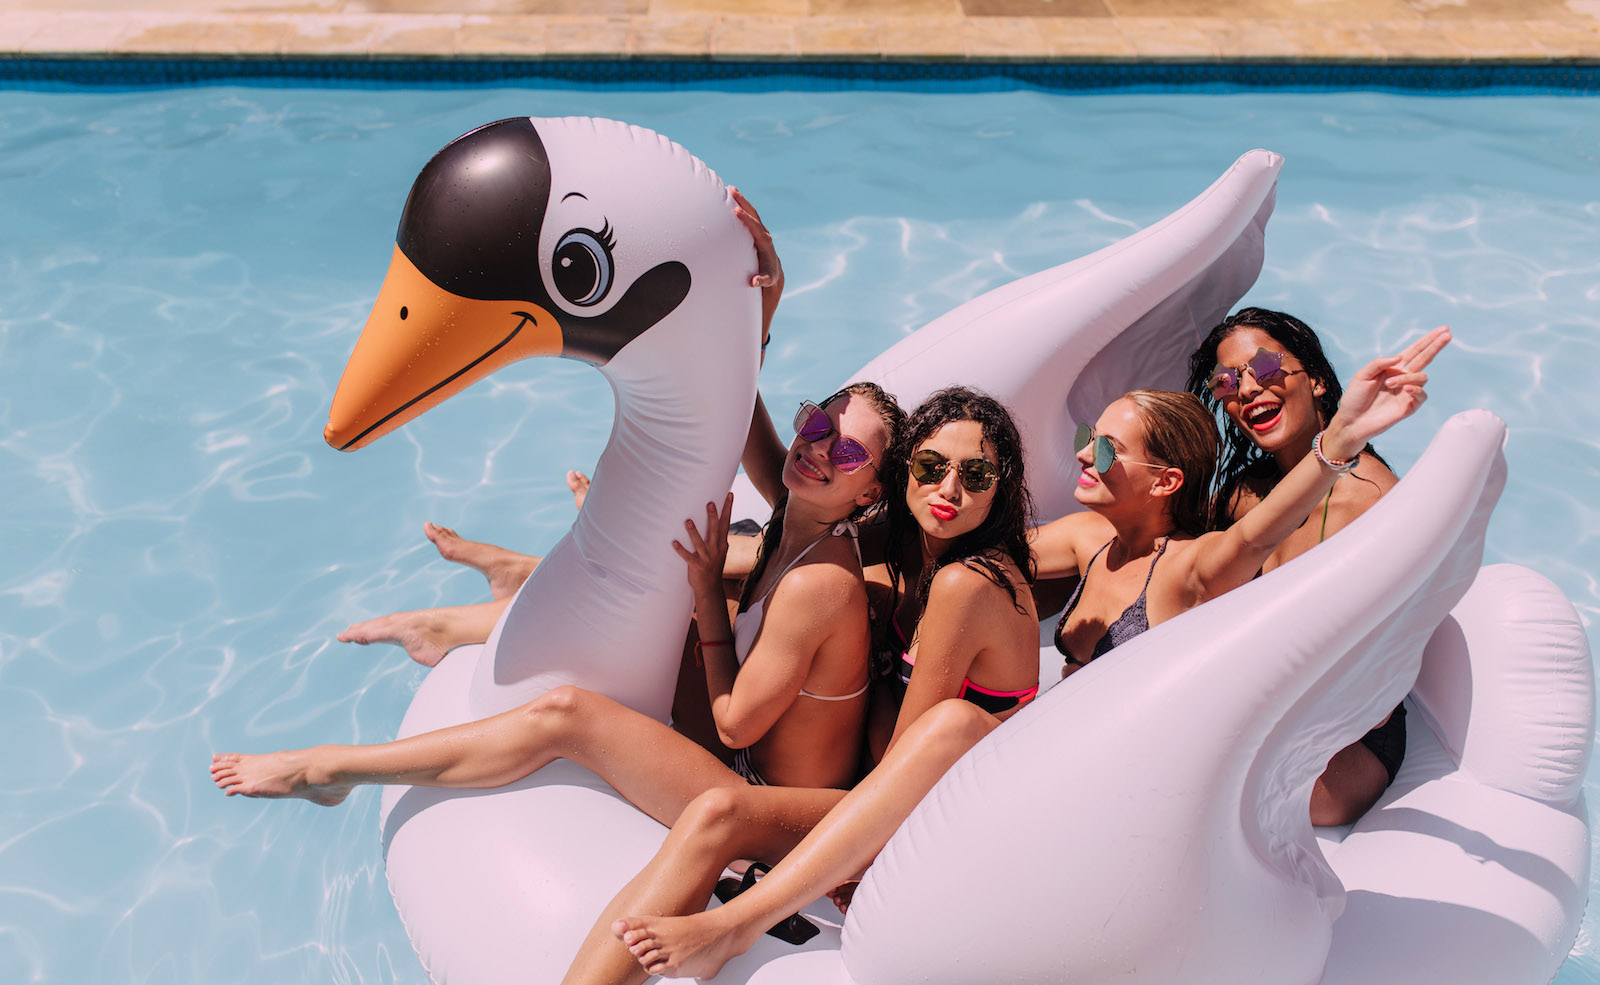 Girls partying in a pool